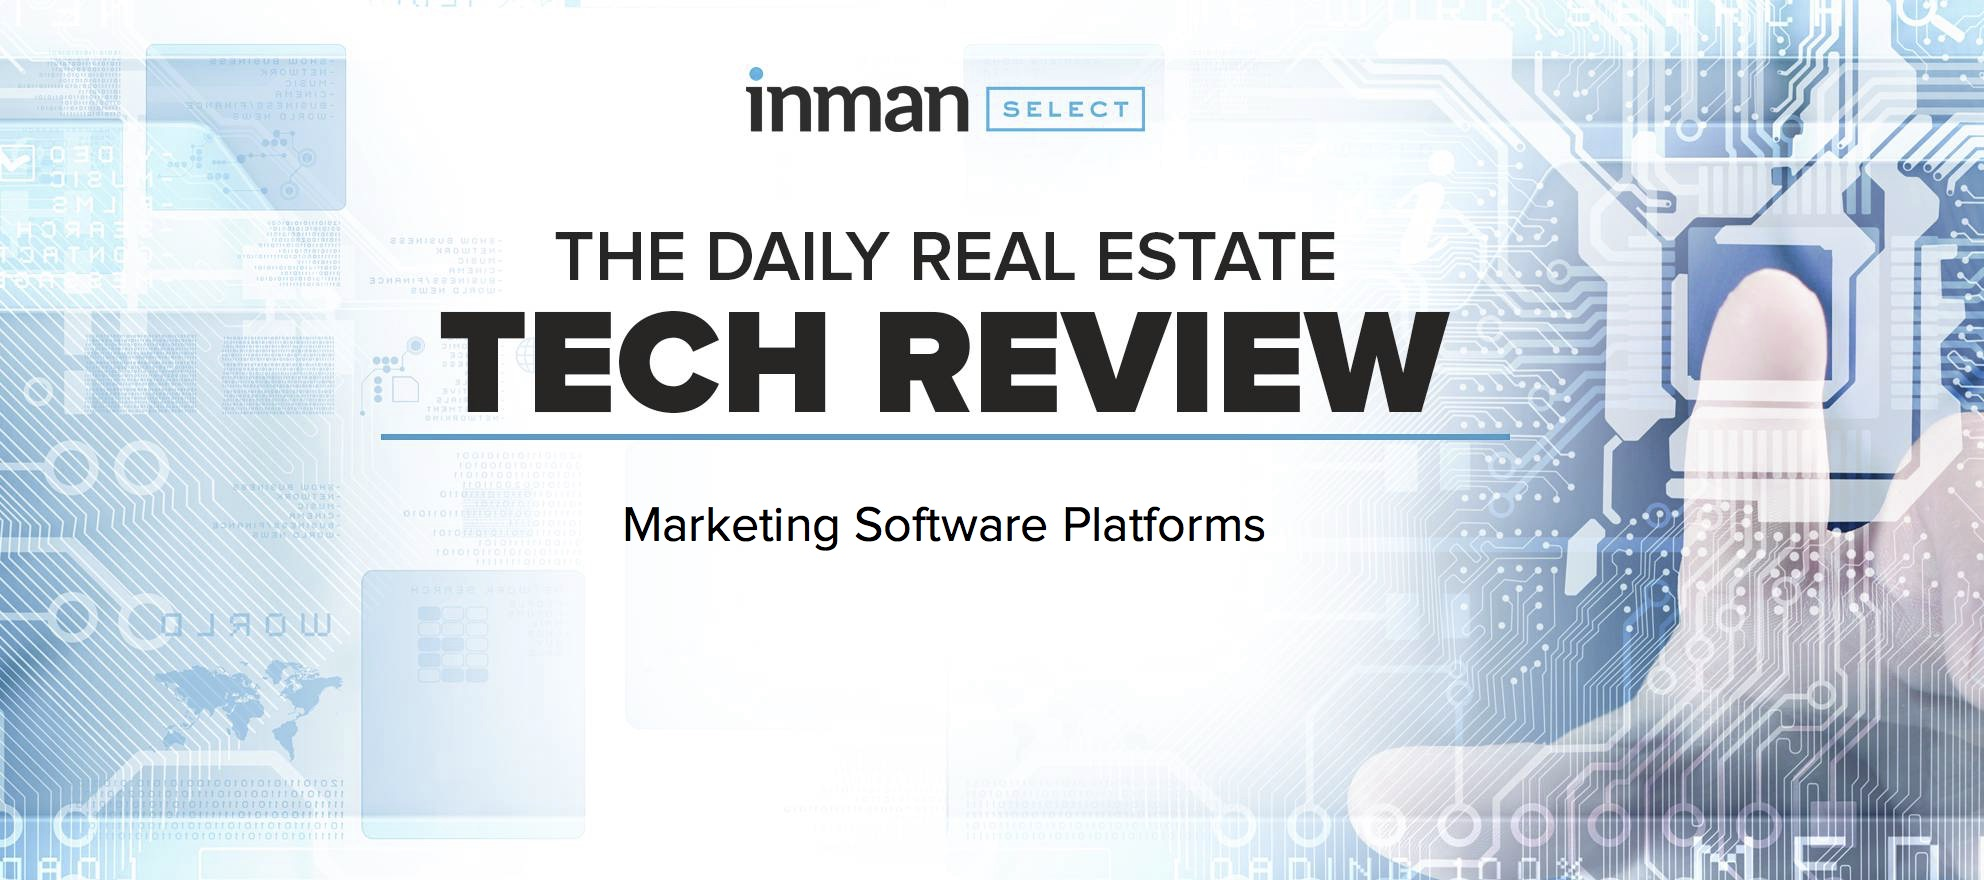 Tech review roundup: marketing software platforms